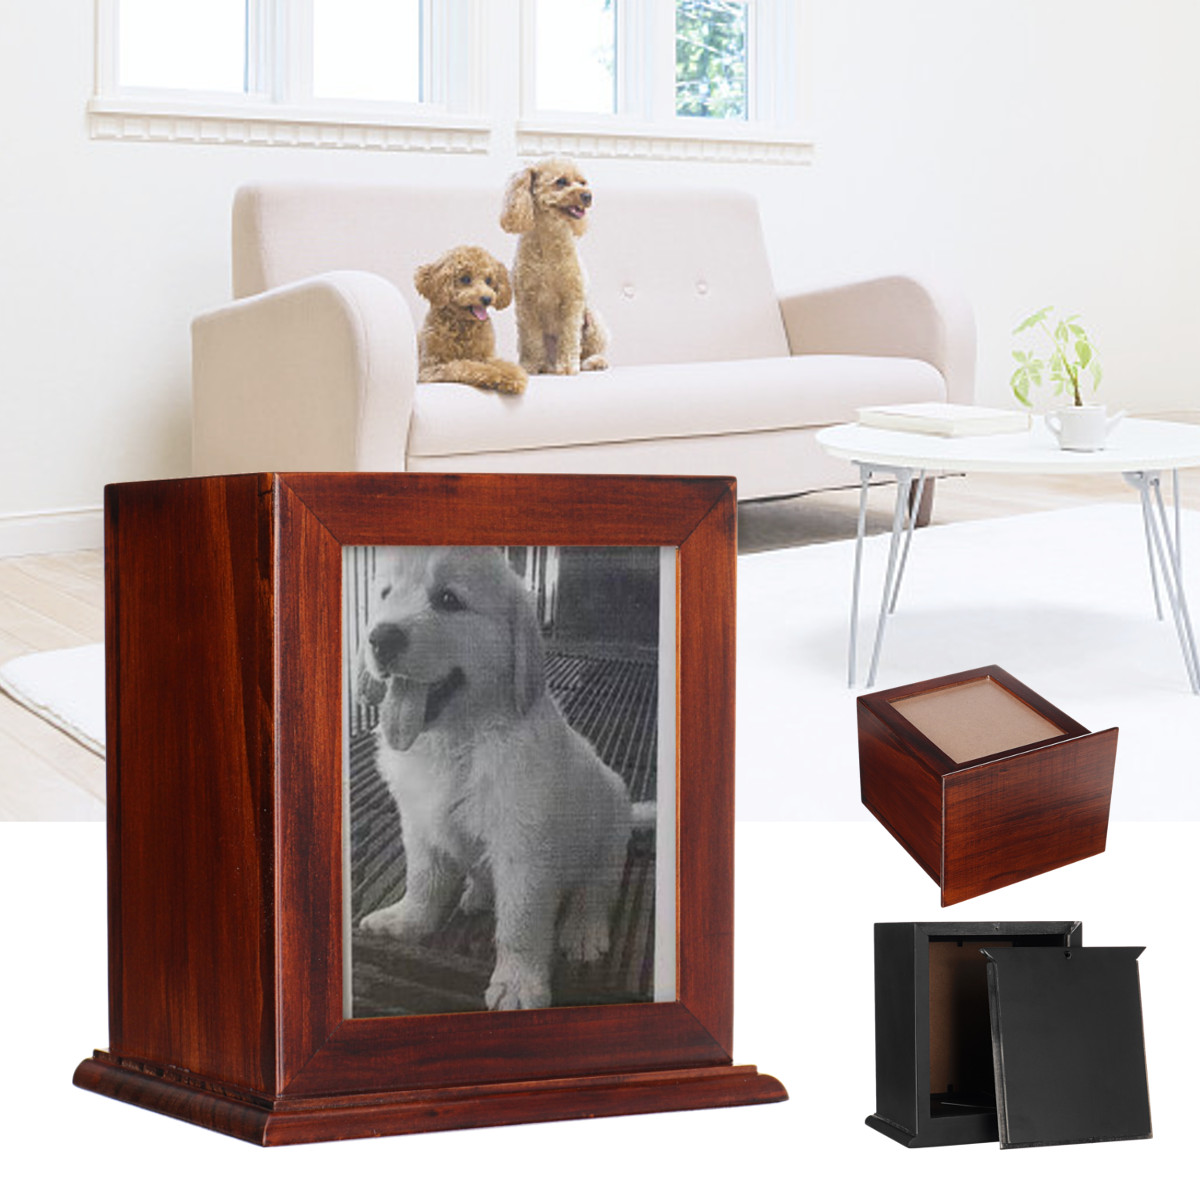 Black/Red Wooden Pet Urn Box Dog Cat Cremation Urn Peaceful Memorial Photo Frame Keep Box For Dog Quiet Home Place